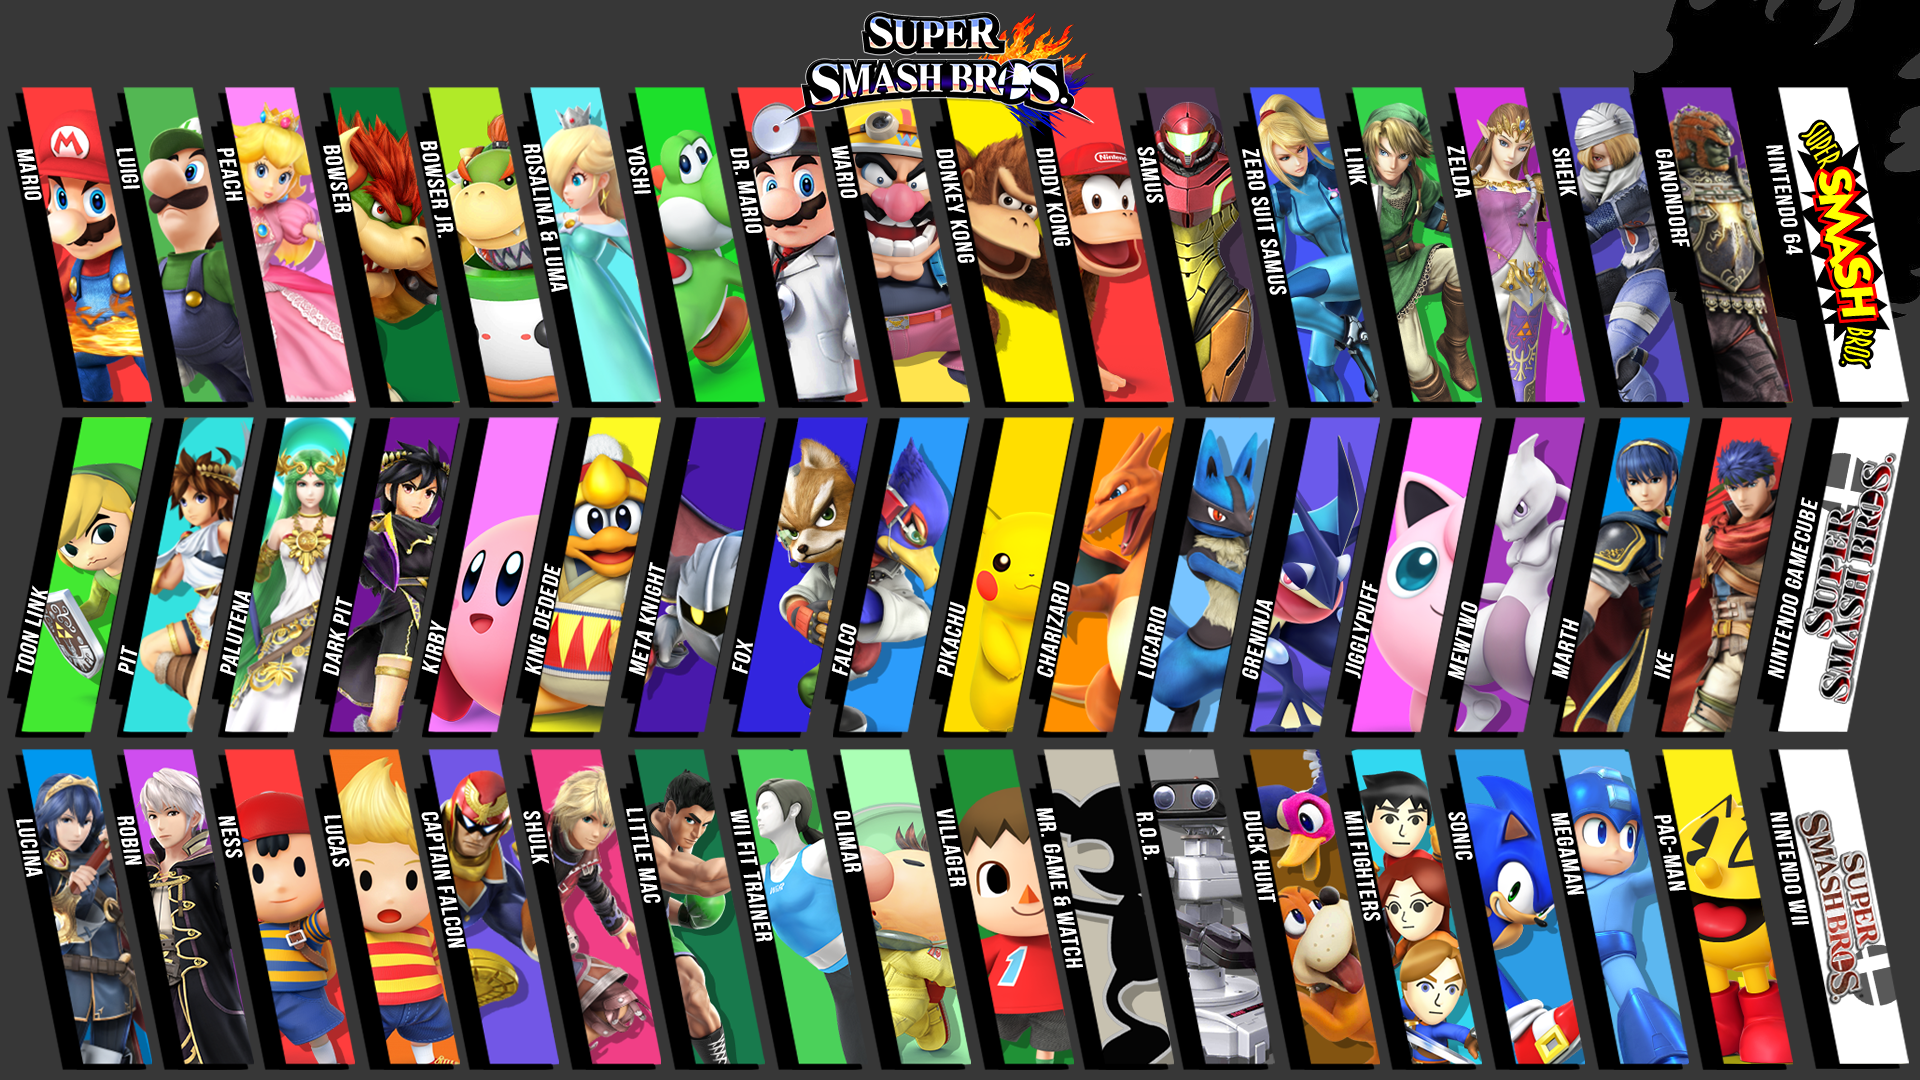 super smash bros wallpaper 1080p